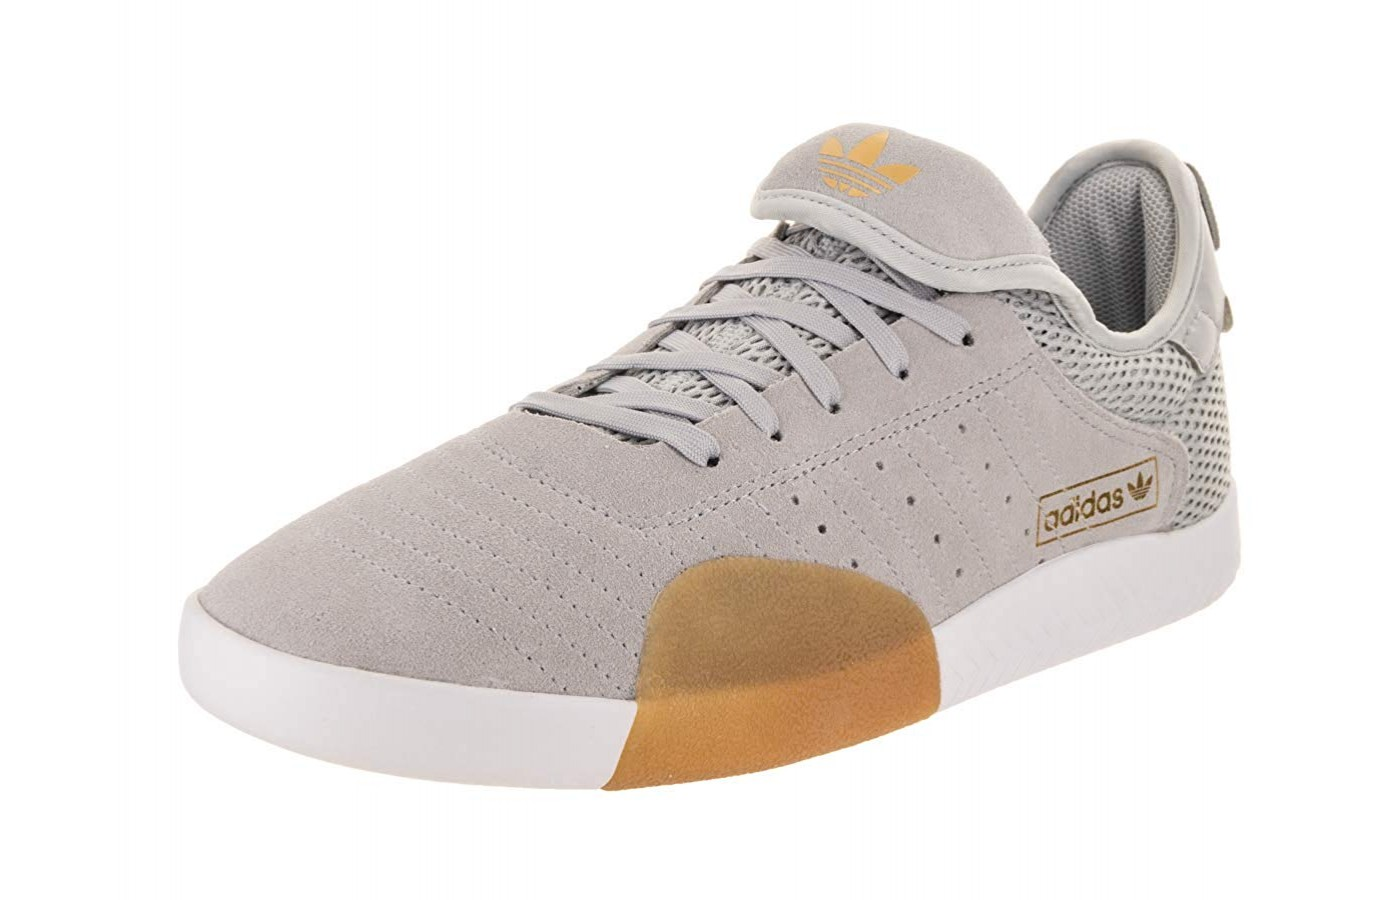 Adidas 3ST.003 is a skate-inspired shoe.